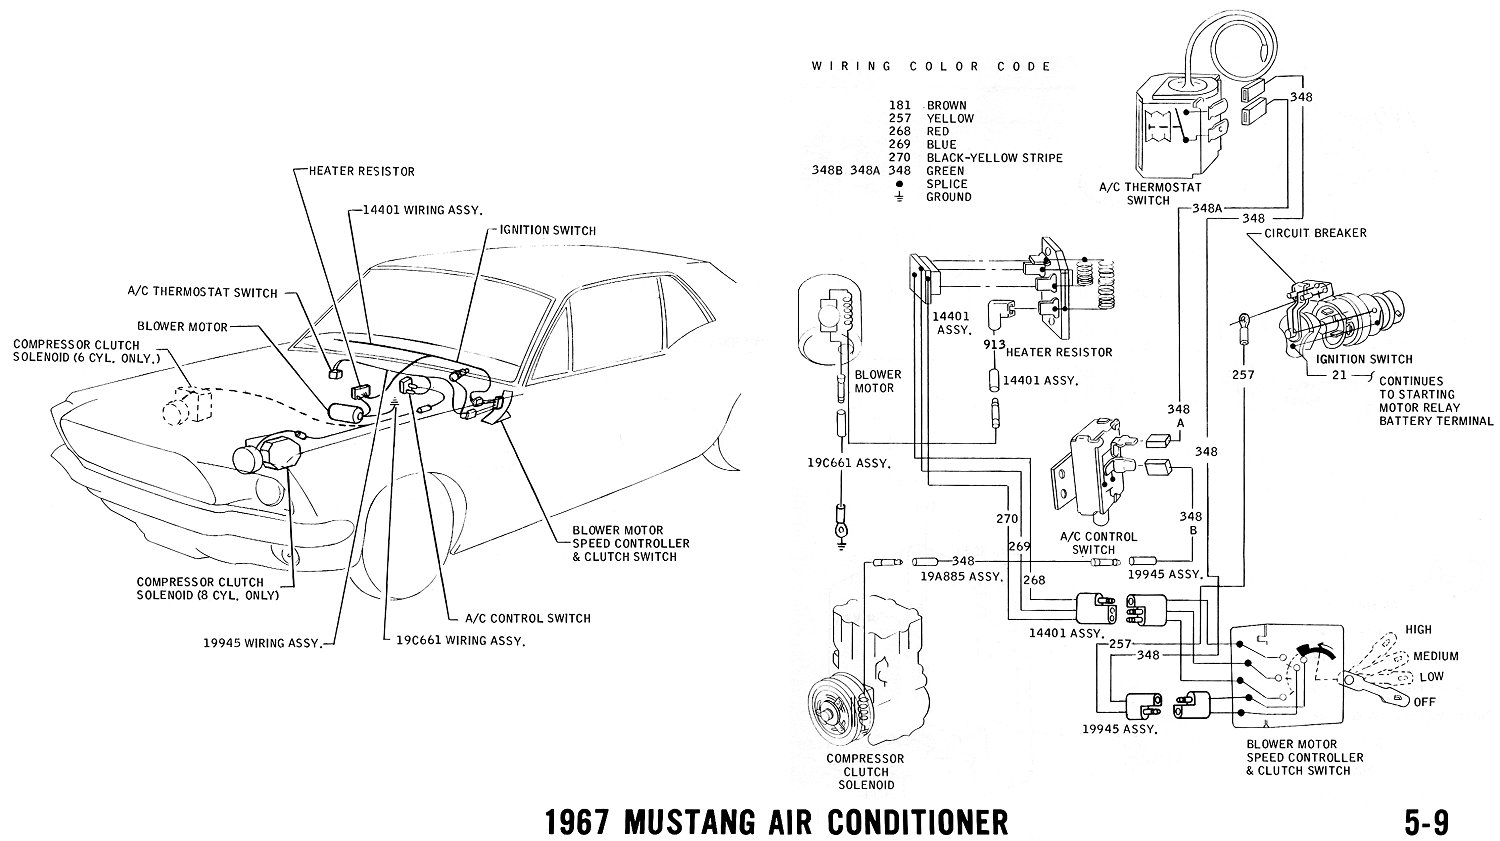 67 Mustang Renovation Project Great Charts From Average Joe Restoration